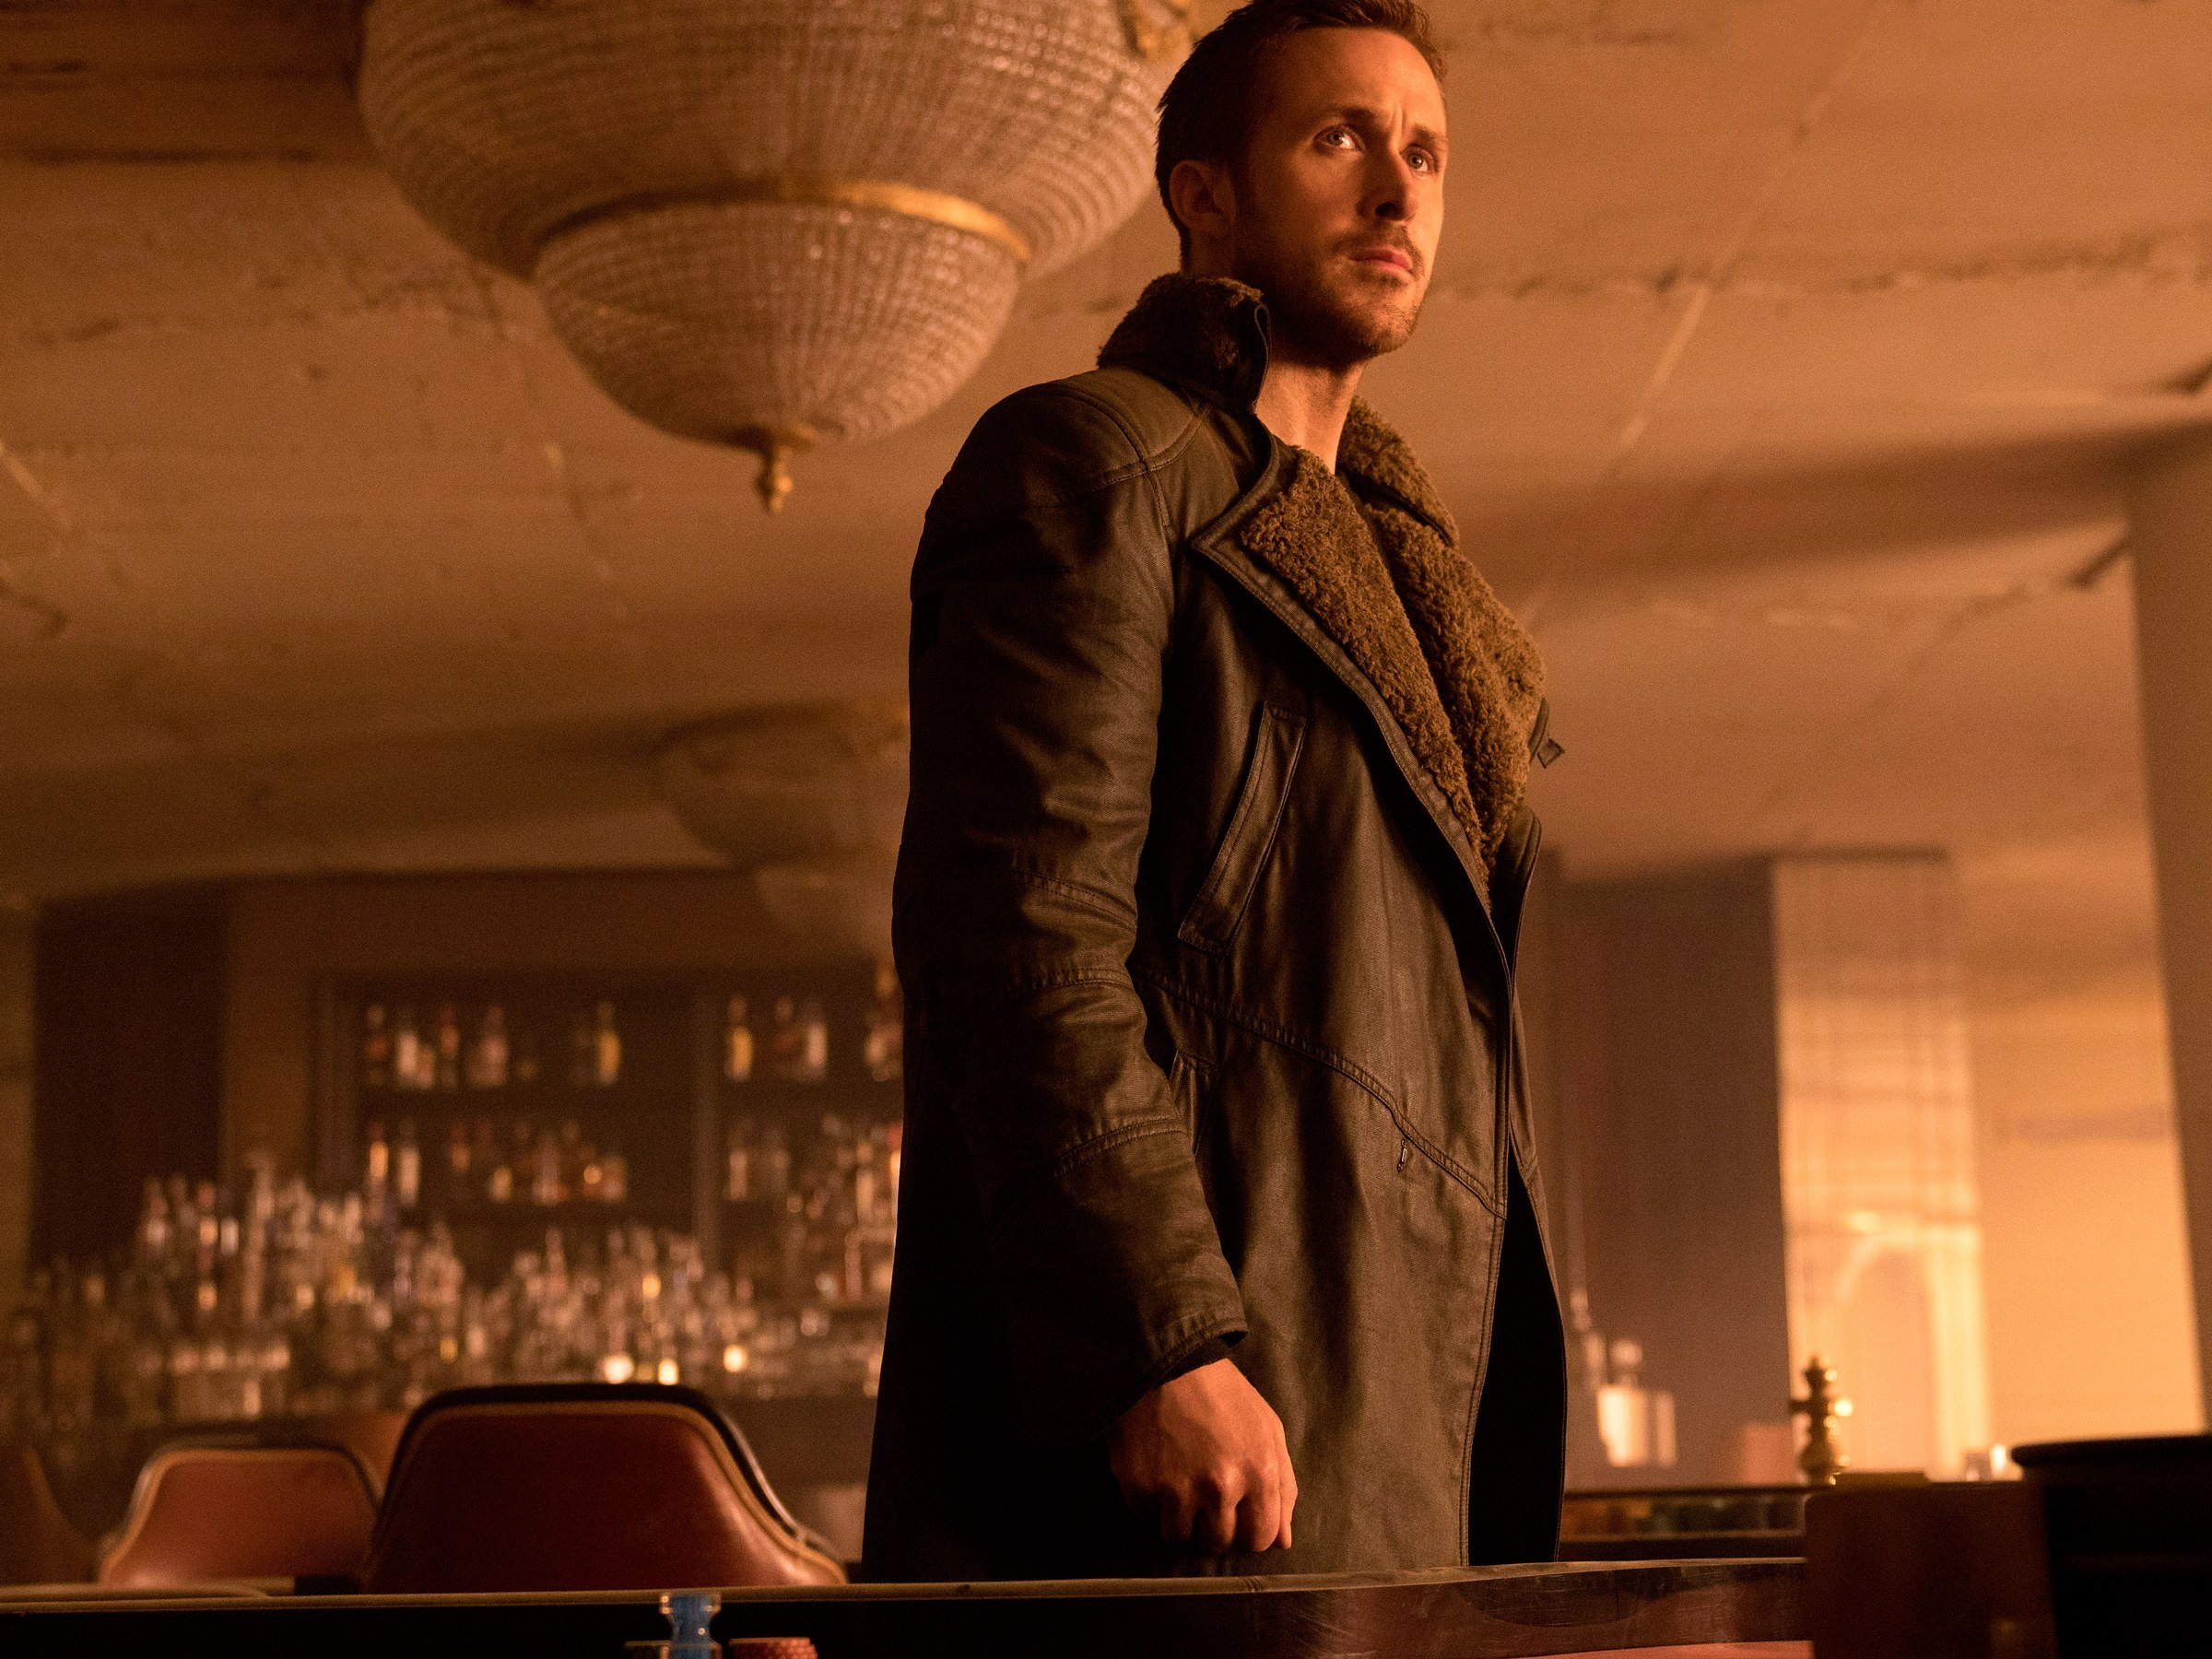 Ryan Gosling stands in a restaurant under a chandelier in Blade Runner 2049